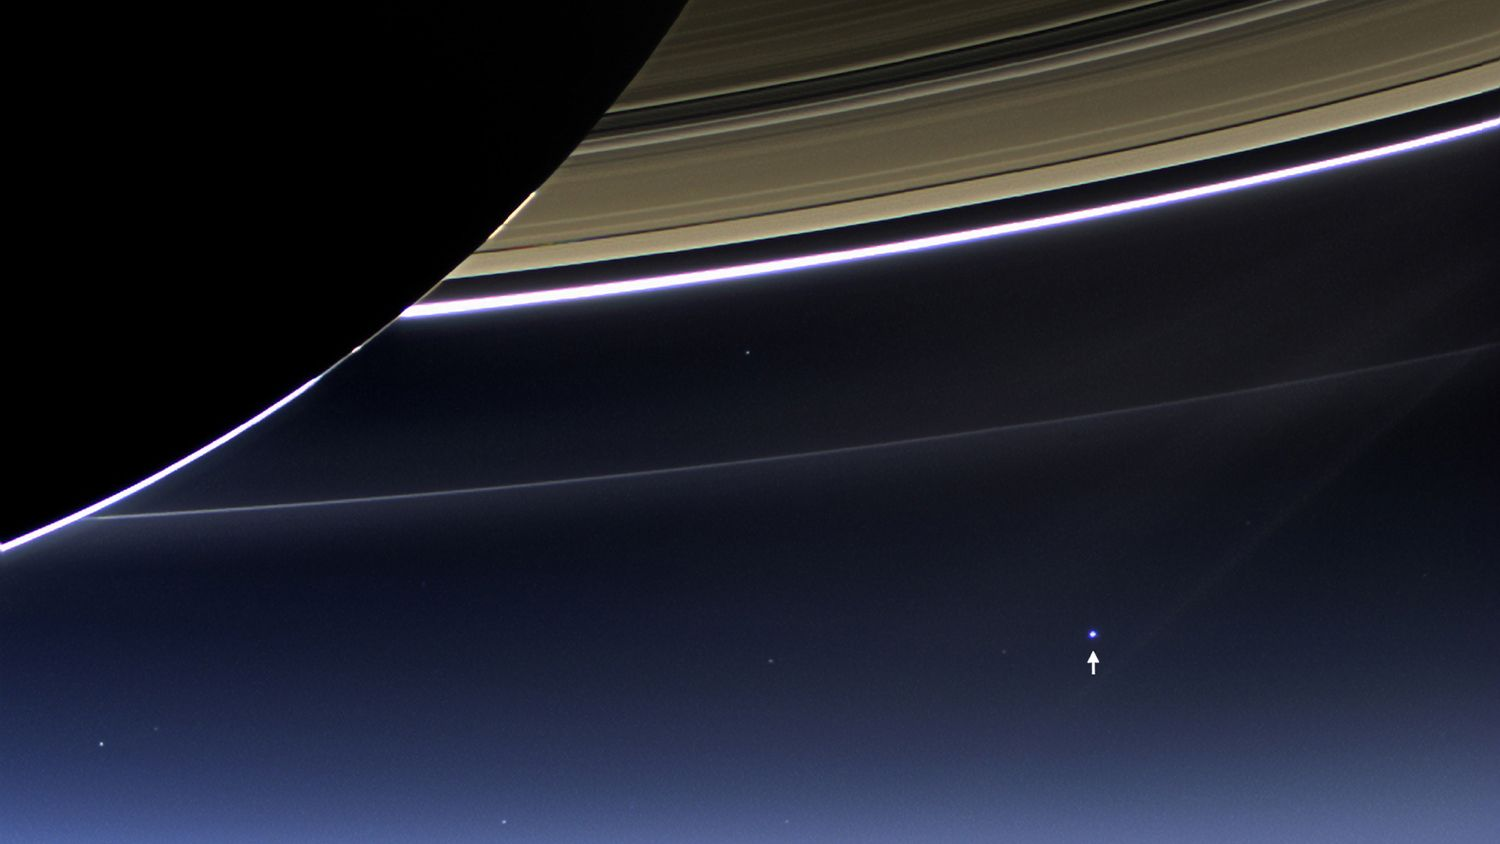 Wave at Saturn! This rare image taken on July 19, 2013, by NASA's Cassini spacecraft shows Saturn's rings and our planet Earth. Though the picture doesn't show it, more than 20,000 people on Earth waved at Saturn at just the time the photo was taken, as NASA had coordinated a plan to involve as many Earthlings as possible in the portrait.